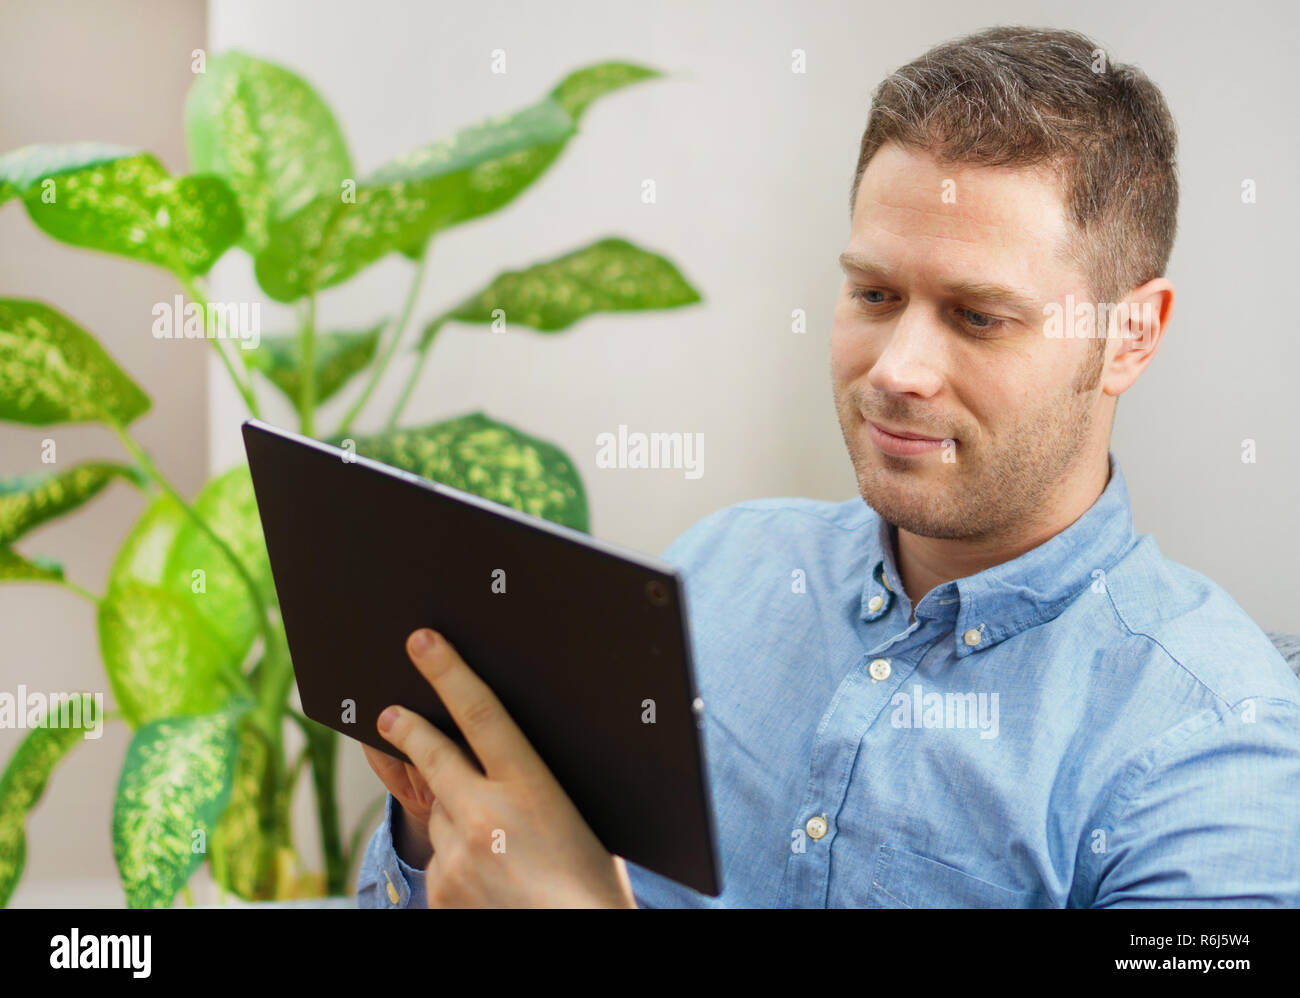 Handsome unshaved man making shopping online. - Stock Image